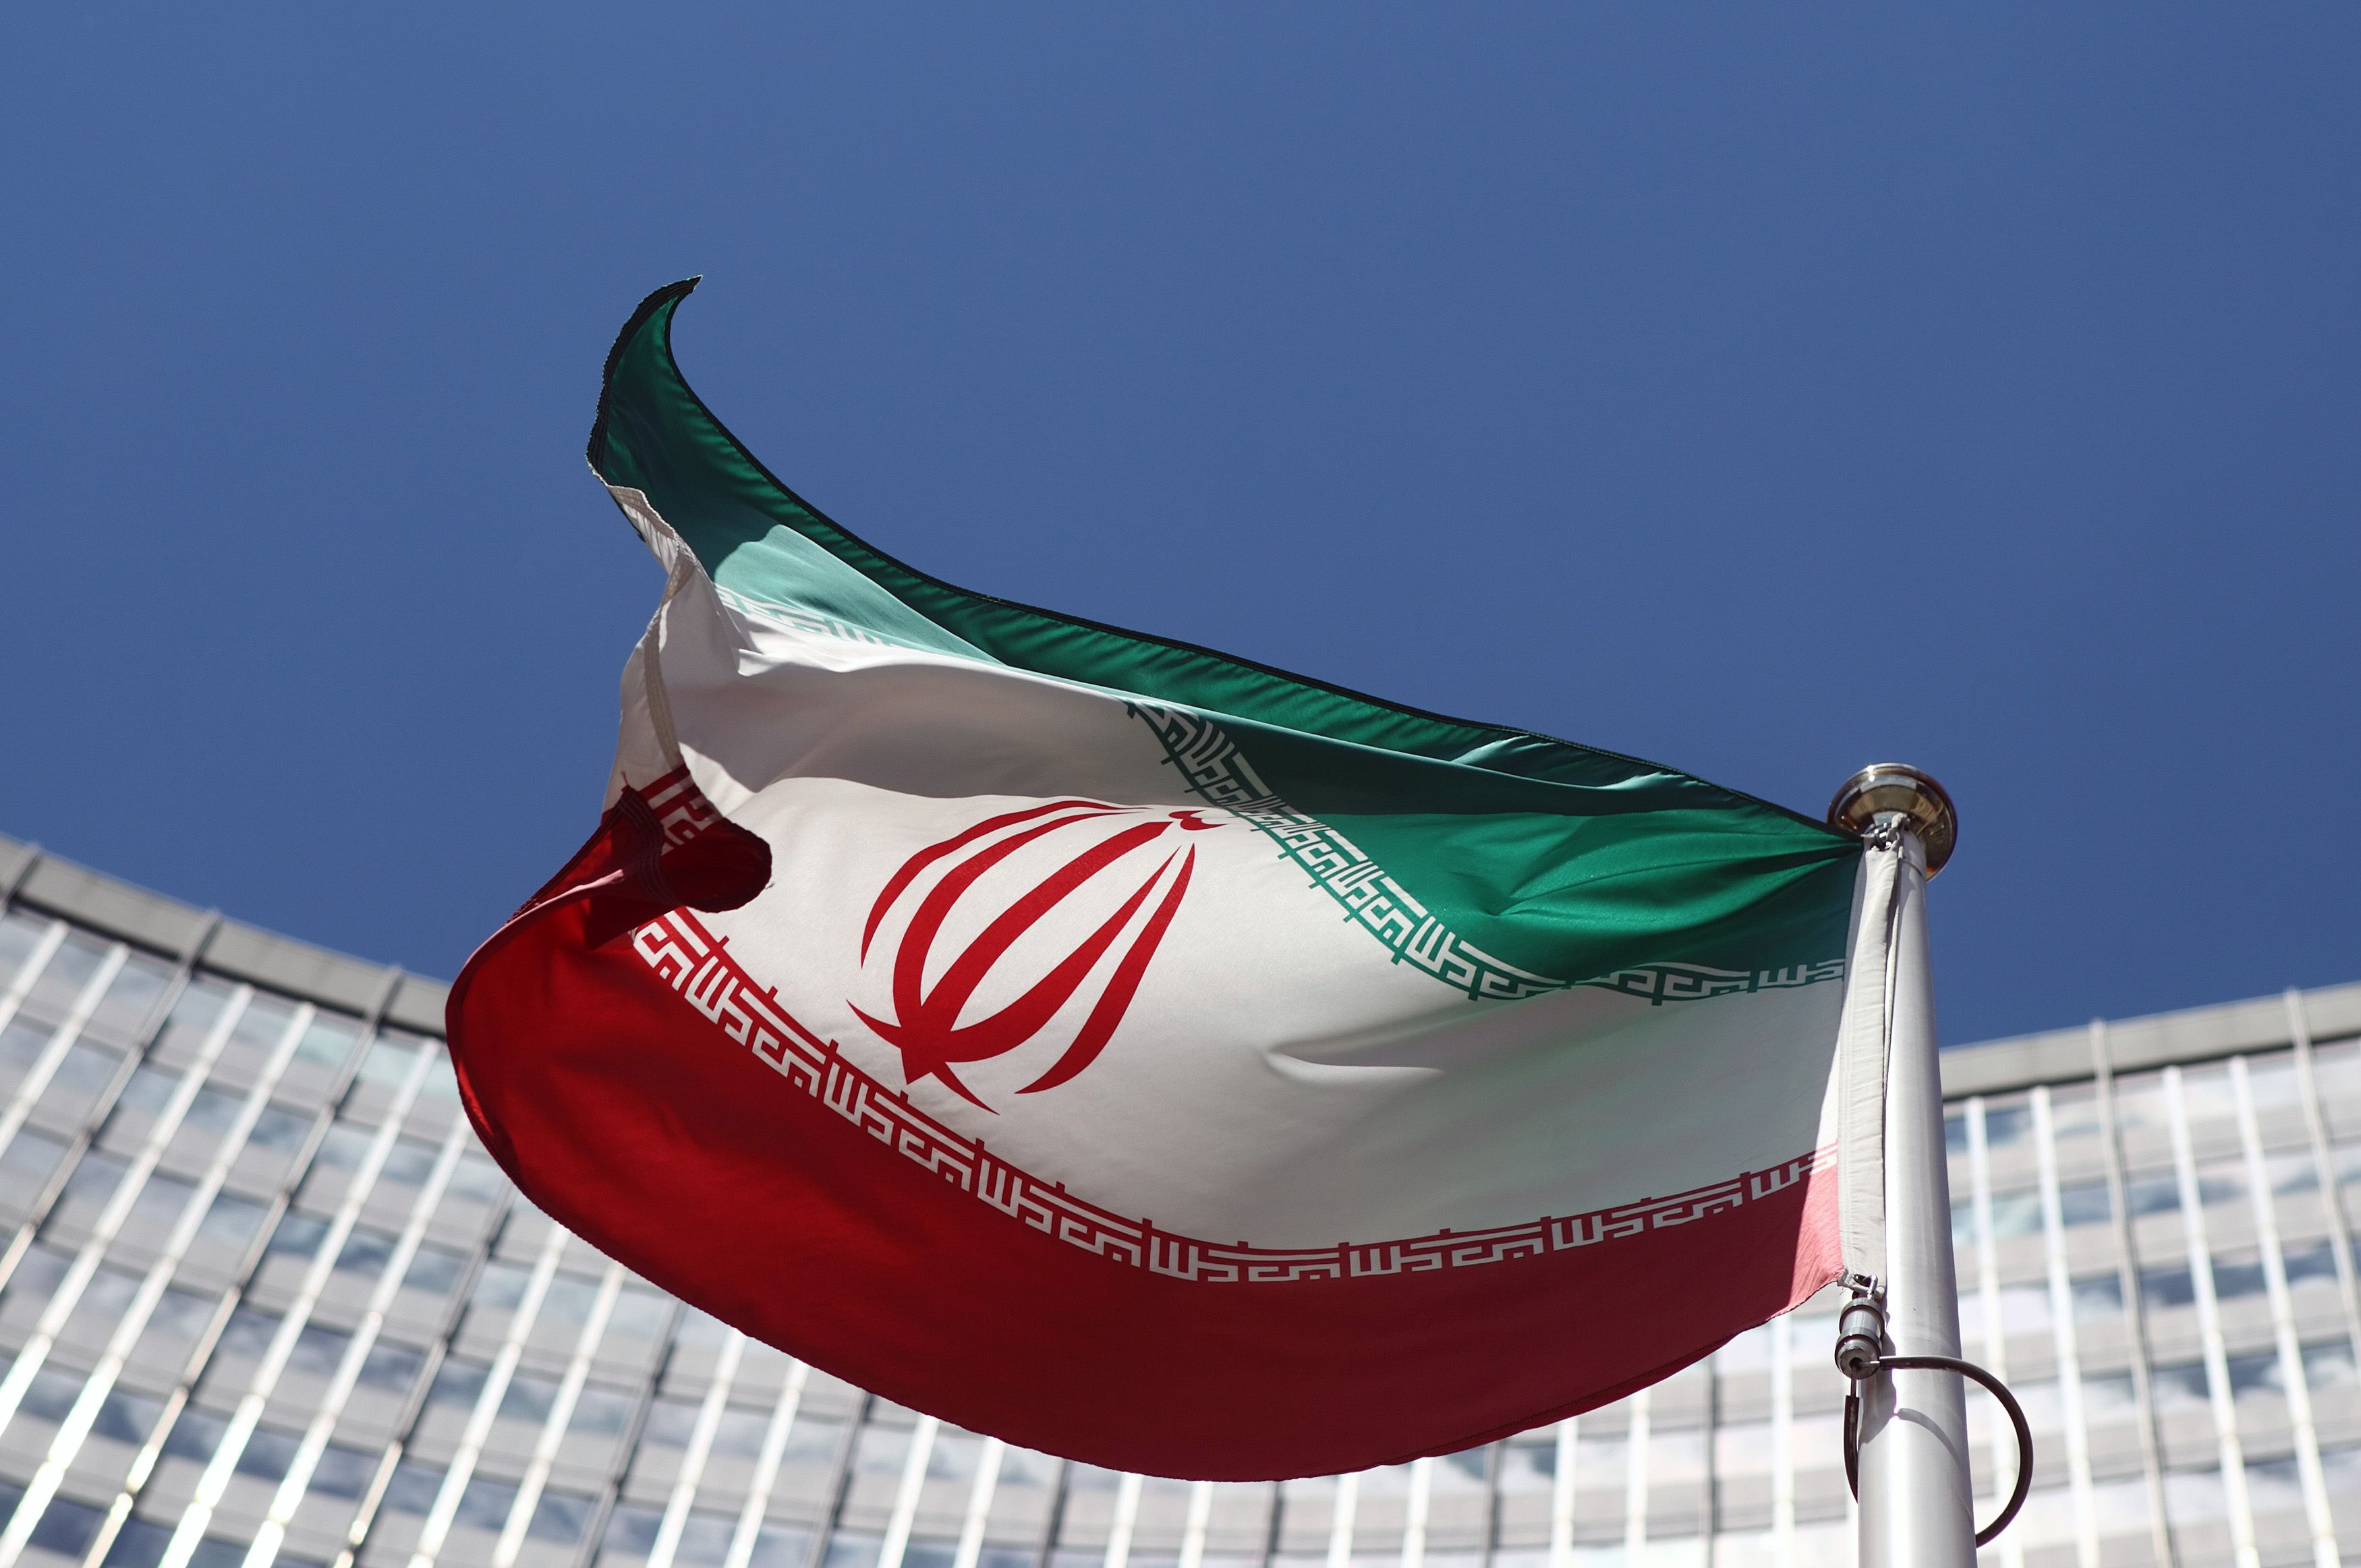 U.N. experts trace recent seized arms to Iran, violating embargo